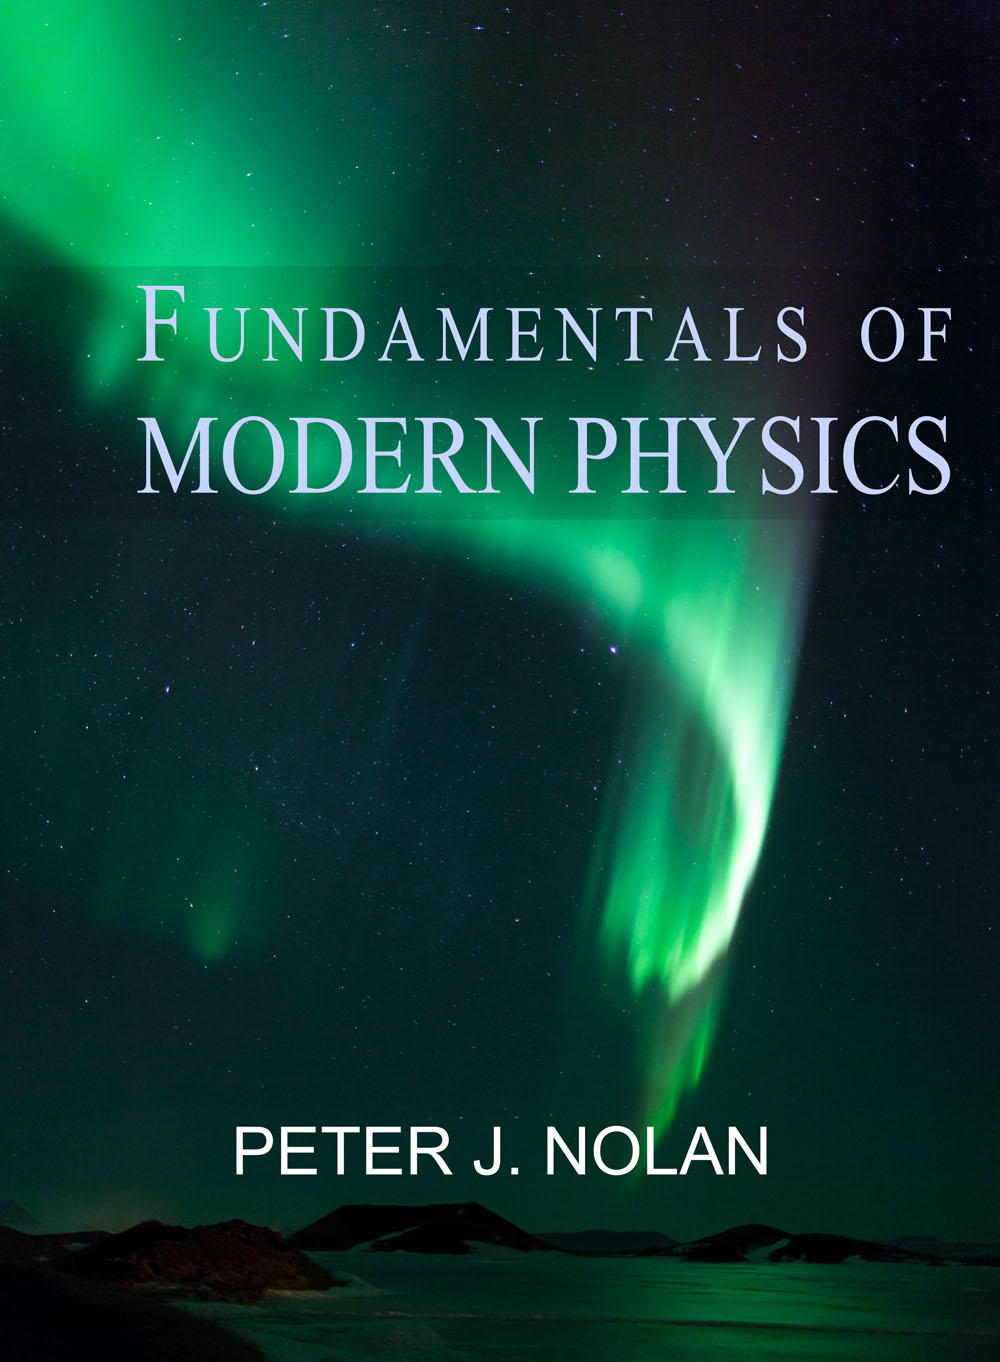 Fundamentals of Modern Physics by Peter Nolan